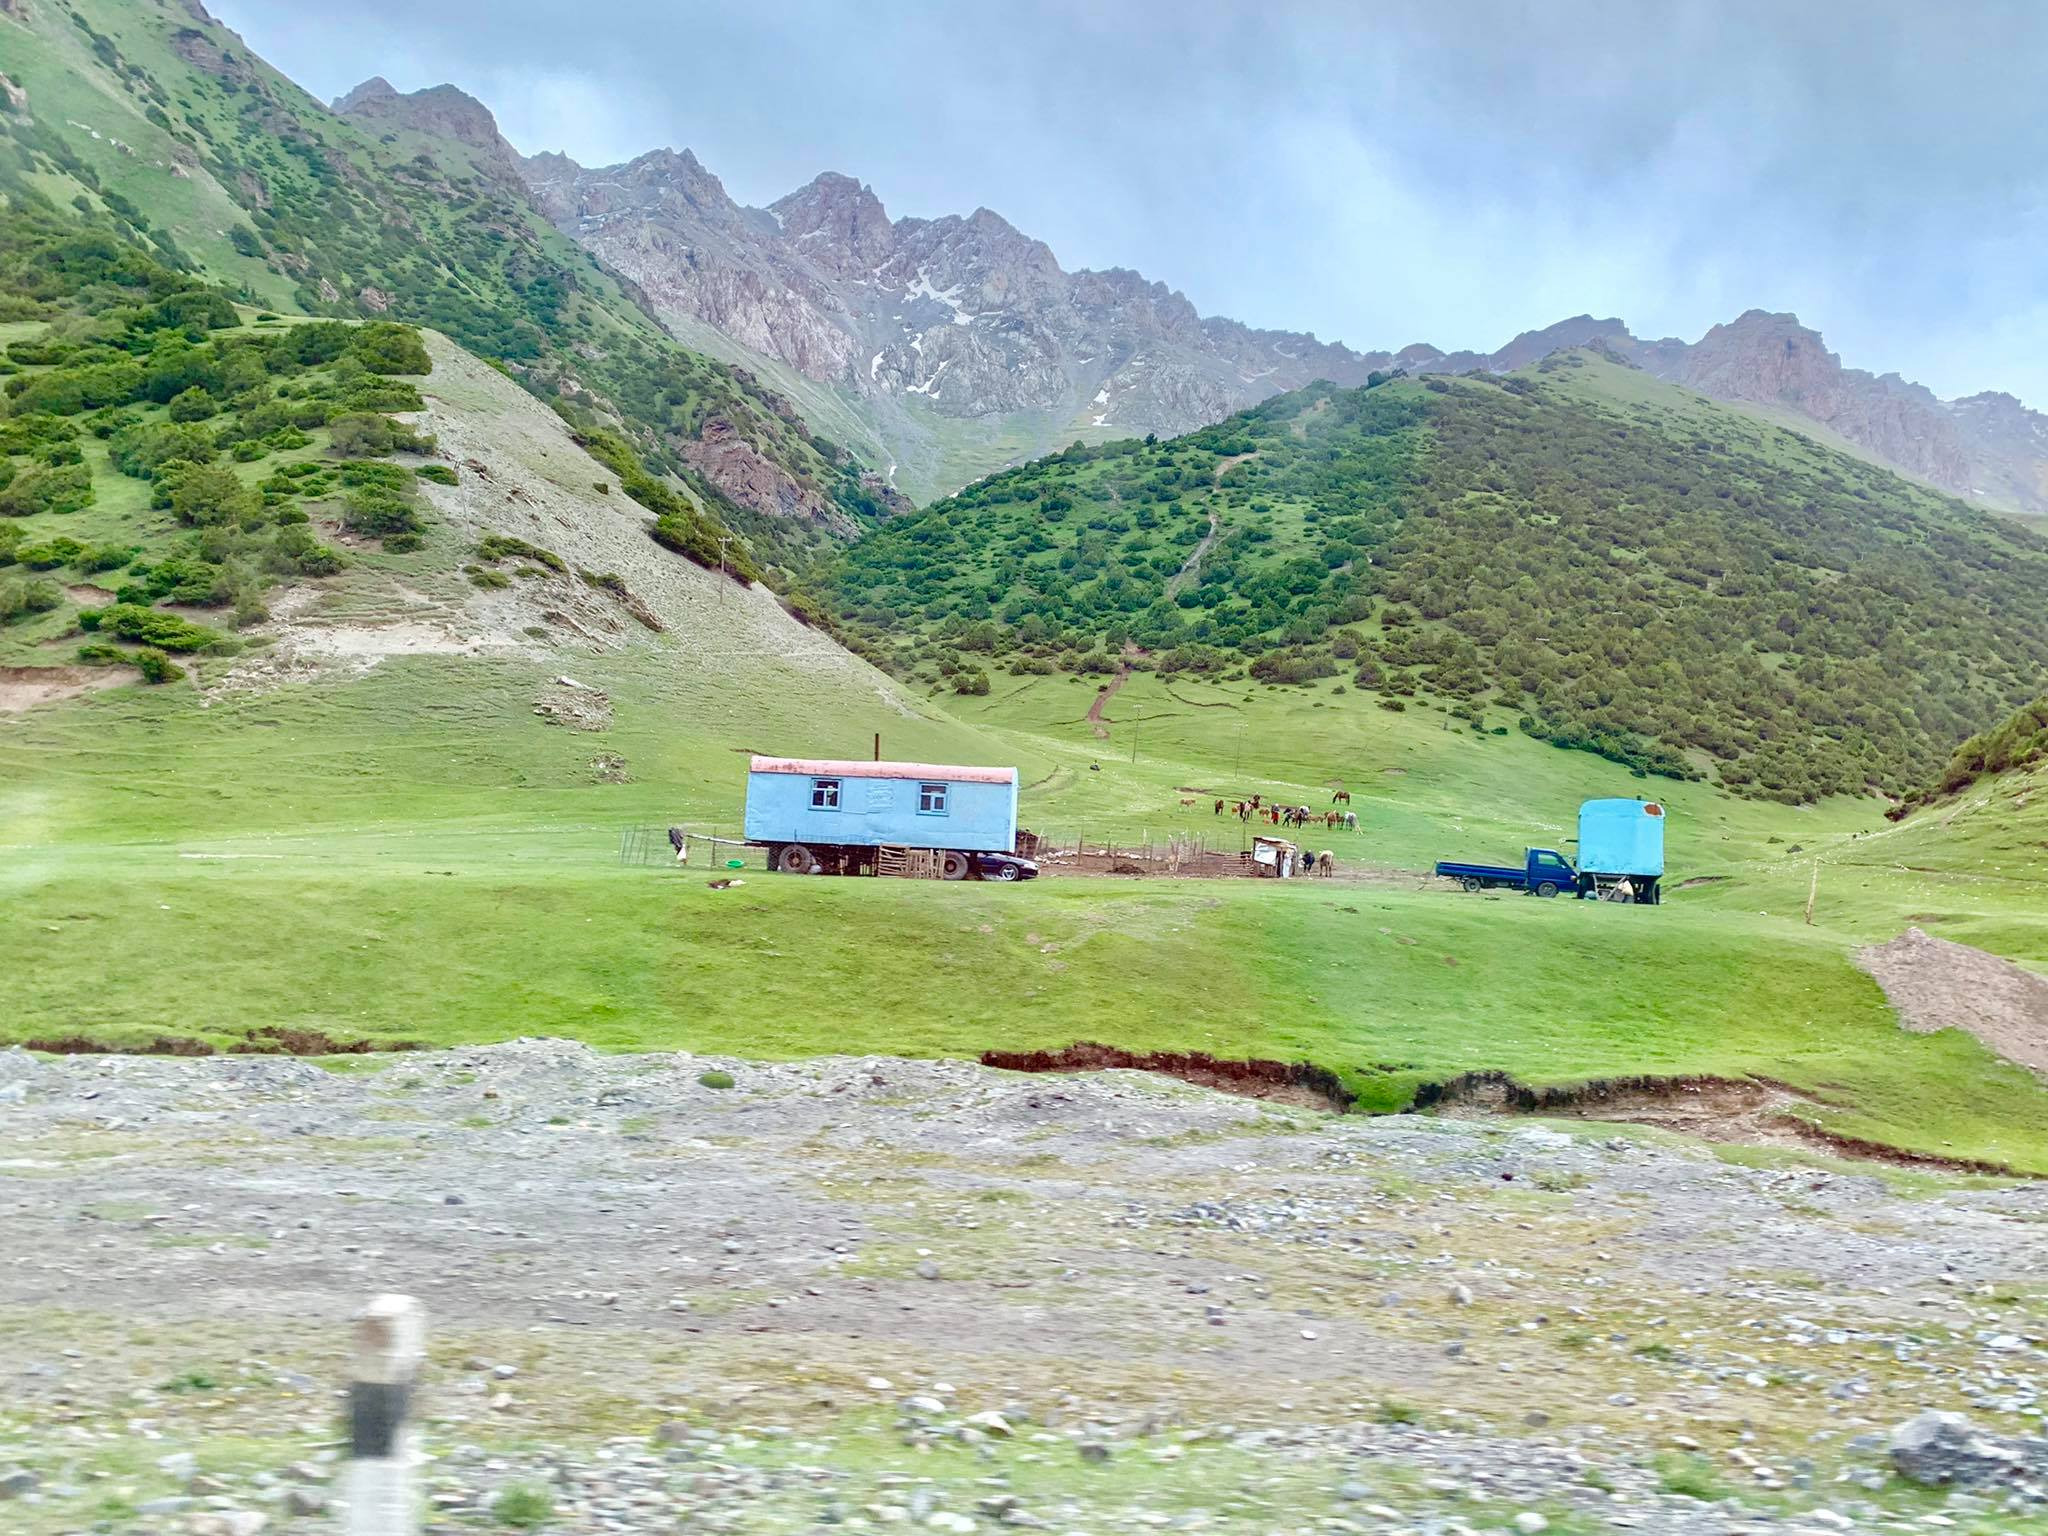 Kach Solo Travels in 2019 Hello from KYRGYZSTAN, my 128th country19.jpg